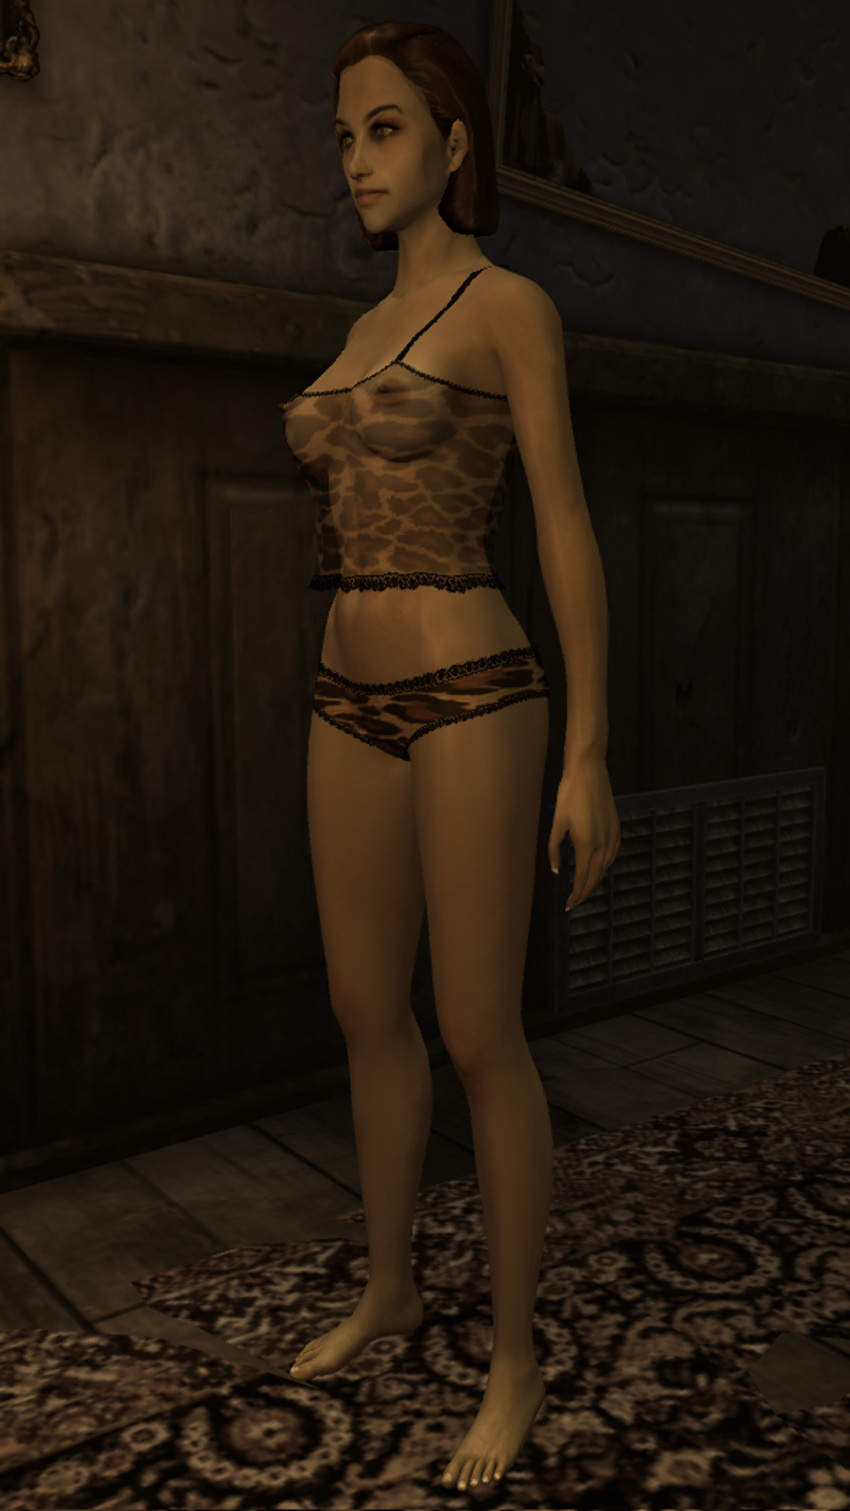 is fallout new veronica where vegas Queen of pain